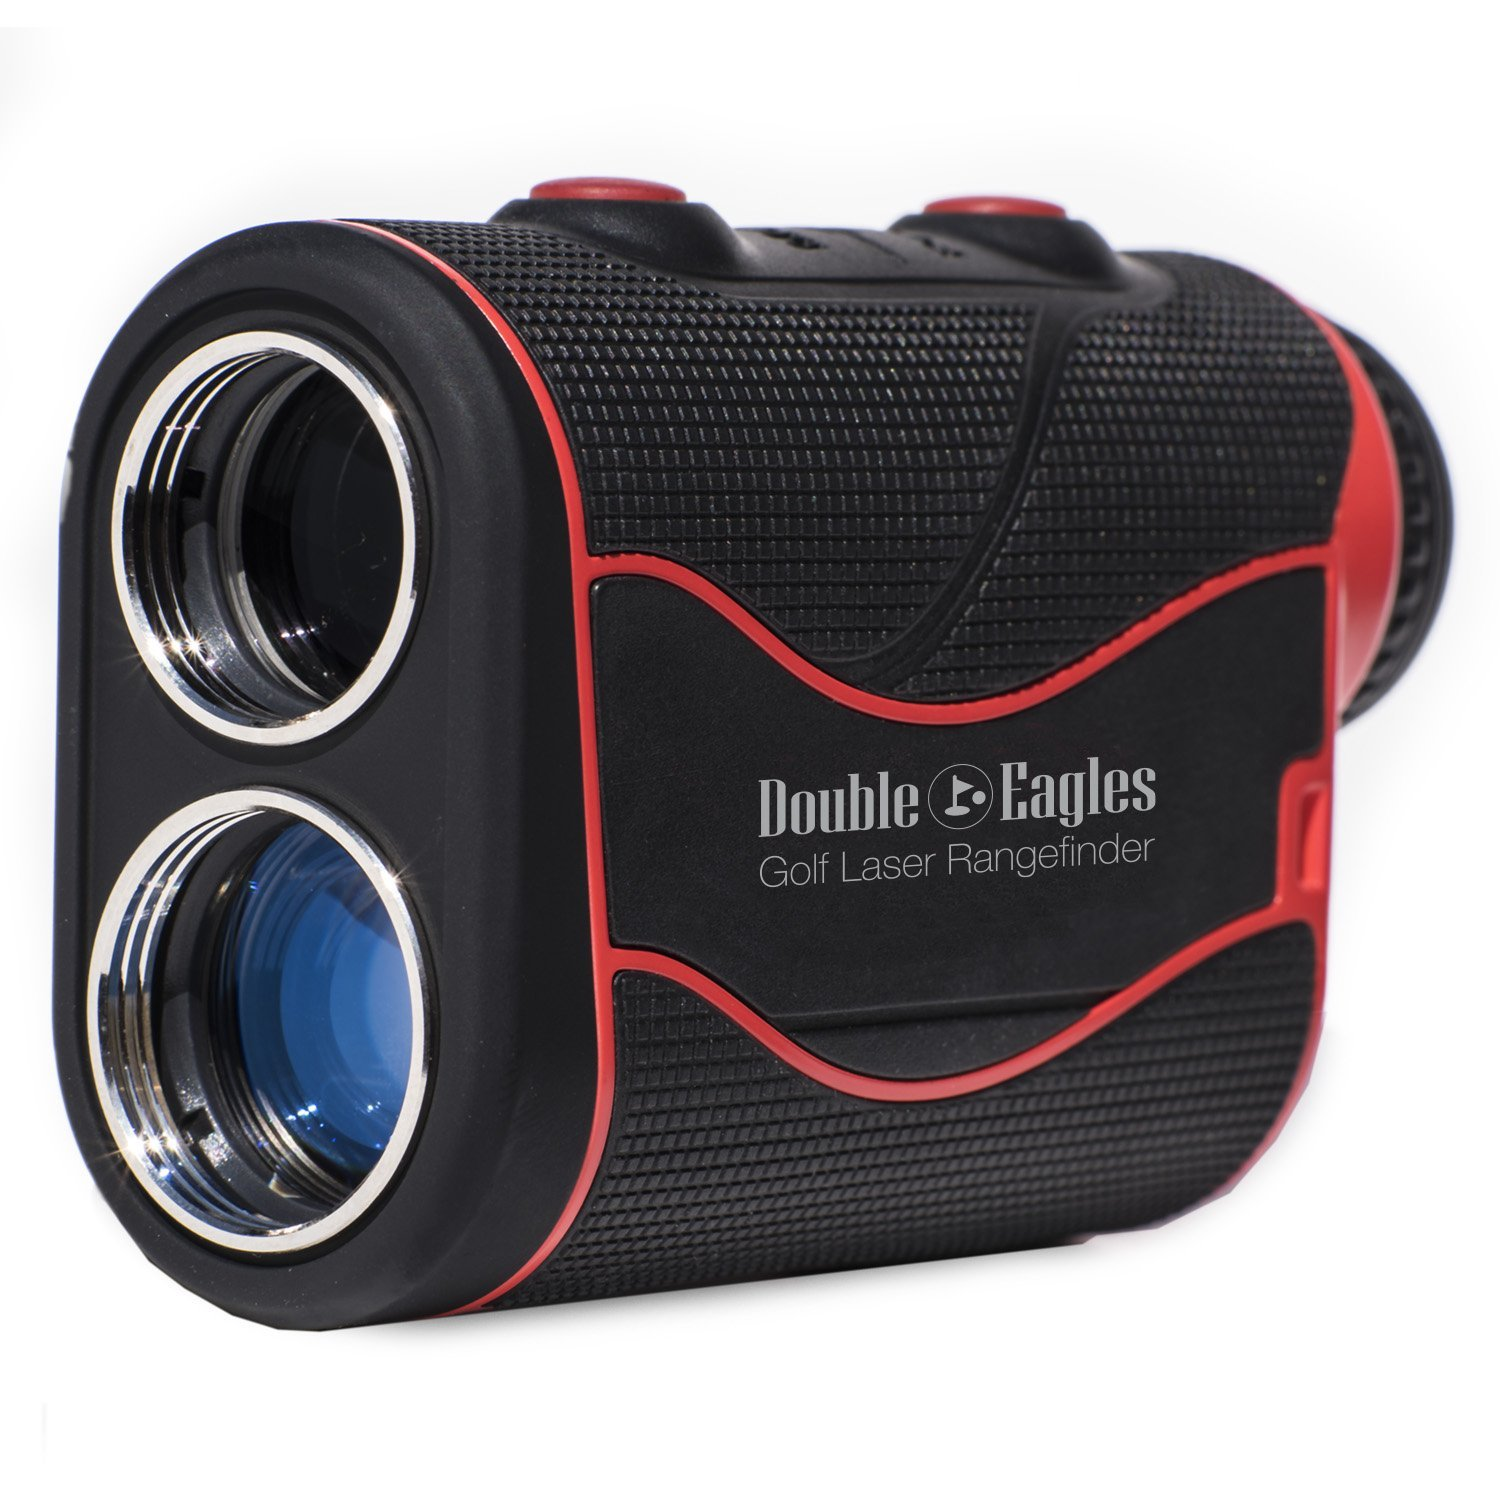 Double Eagles DEPRO-800 Golf Rangefinder - Laser Range Finder with Pinsensor - Laser Binoculars - Free Battery - Water Proof by Kozyvacu (Image #1)